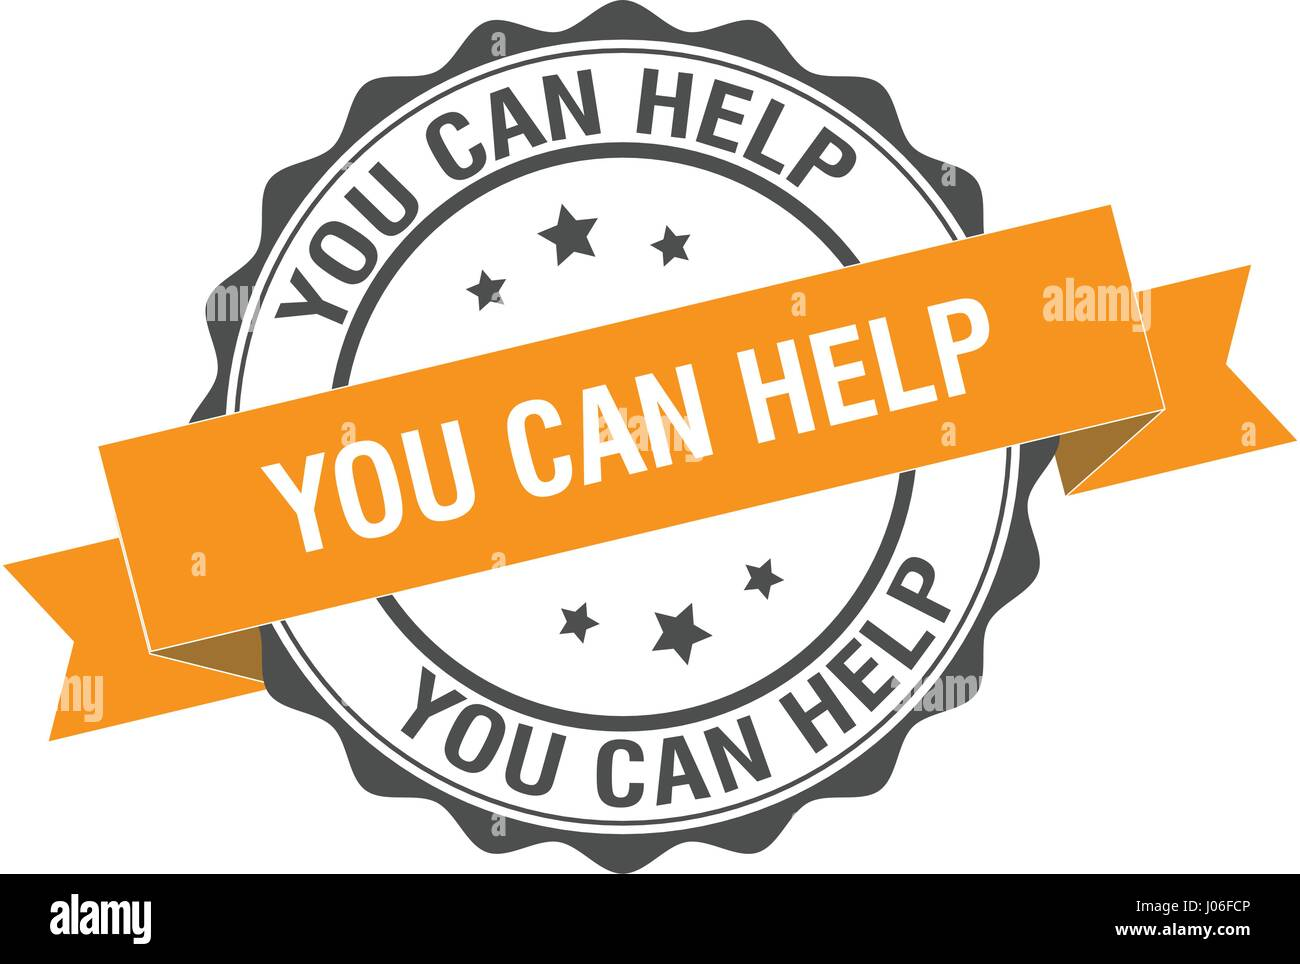 You can help stamp illustration - Stock Image